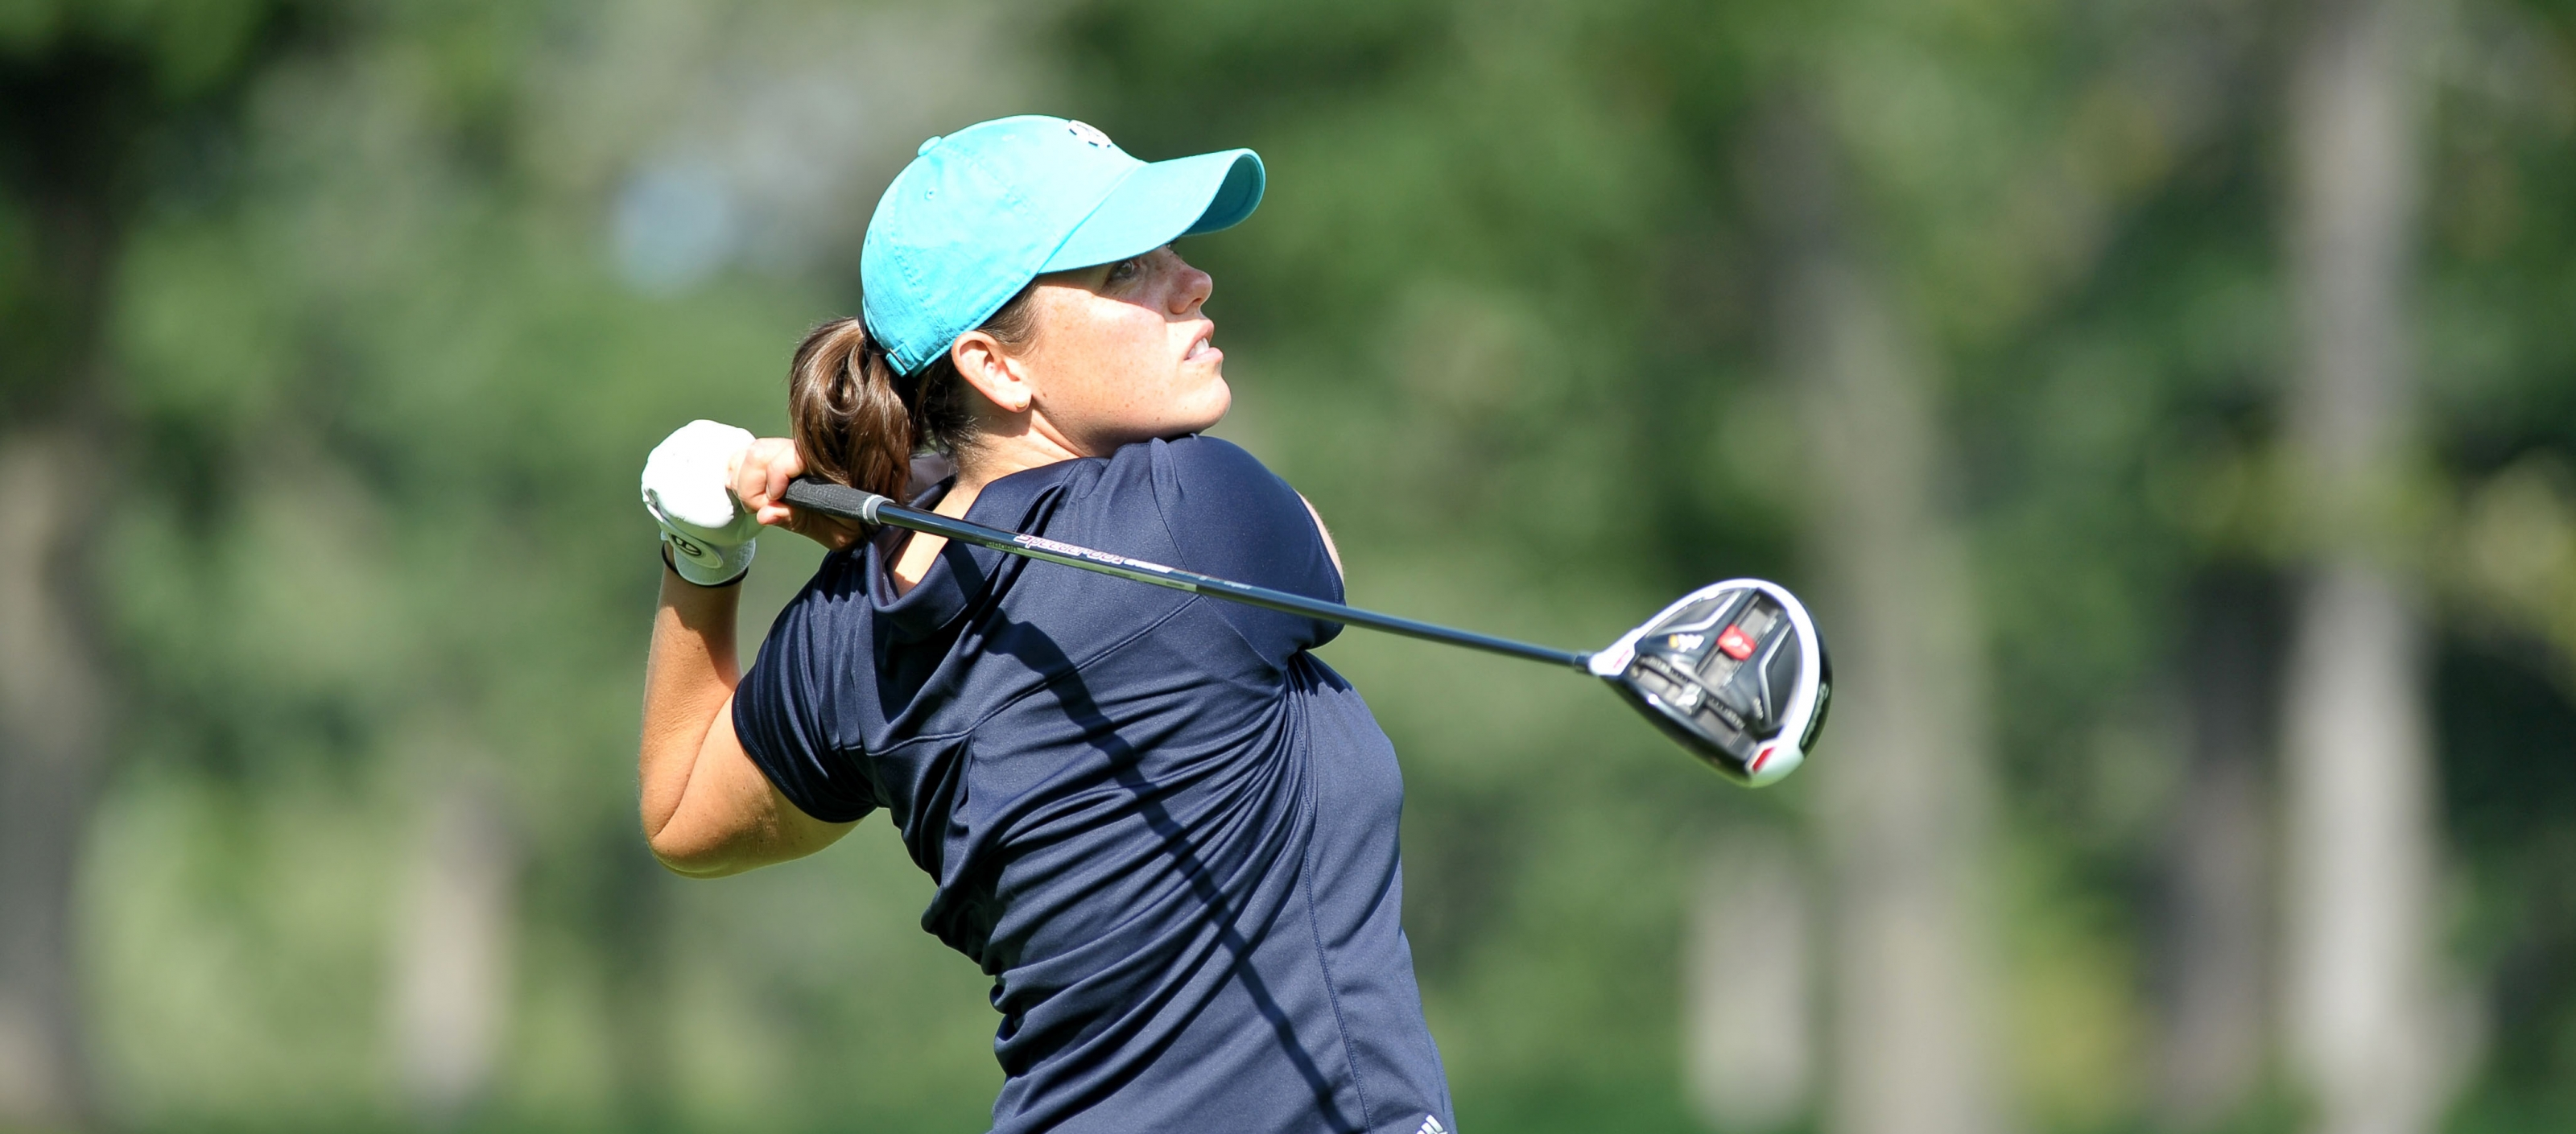 Biltmore's Katie Pius Going Strong in Game of Golf and Life